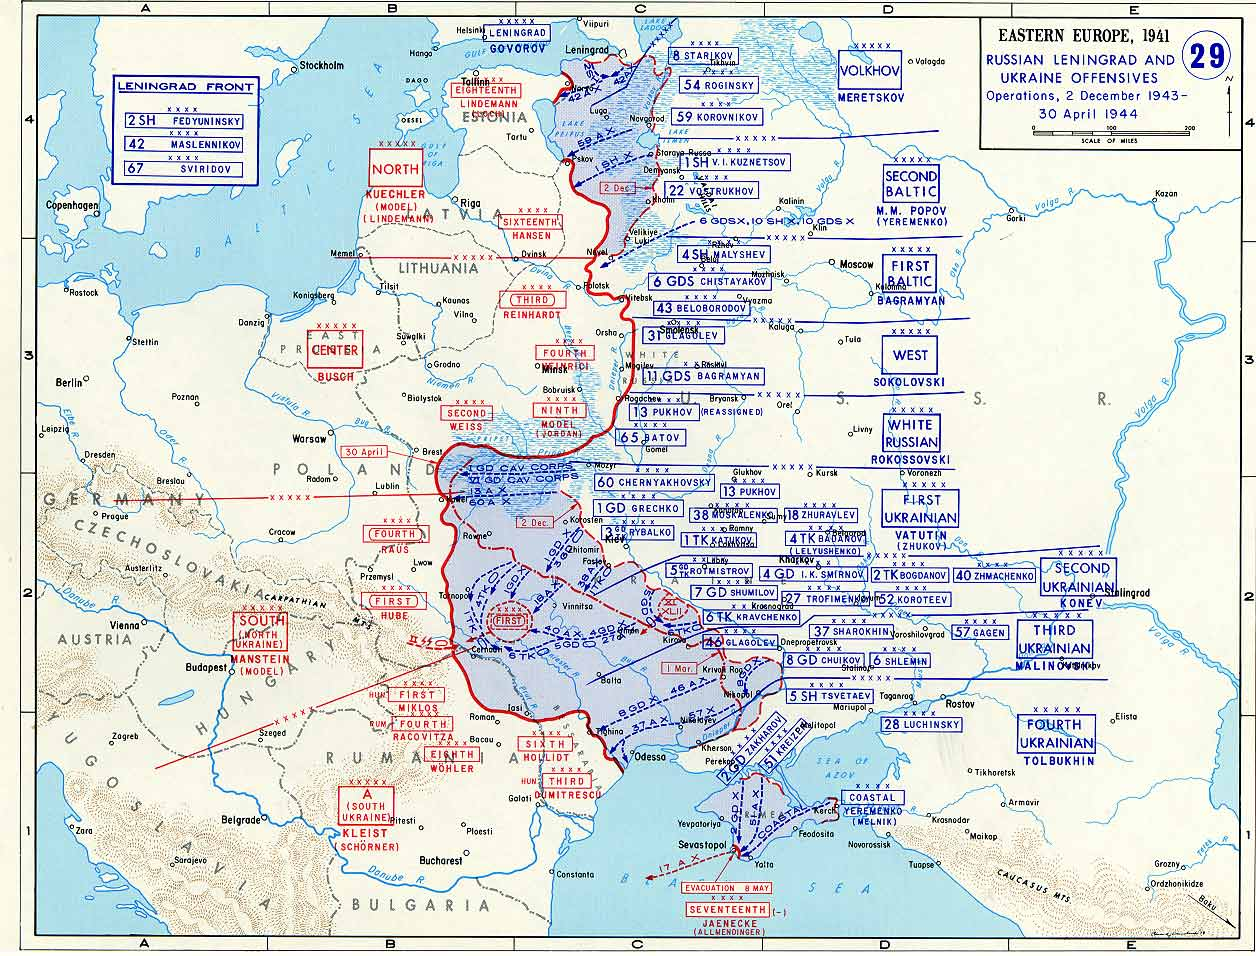 Map of leningrad and ukraine offensives december 1943 april 1944 wwii war theatre maps leningrad and ukraine offensives gumiabroncs Gallery